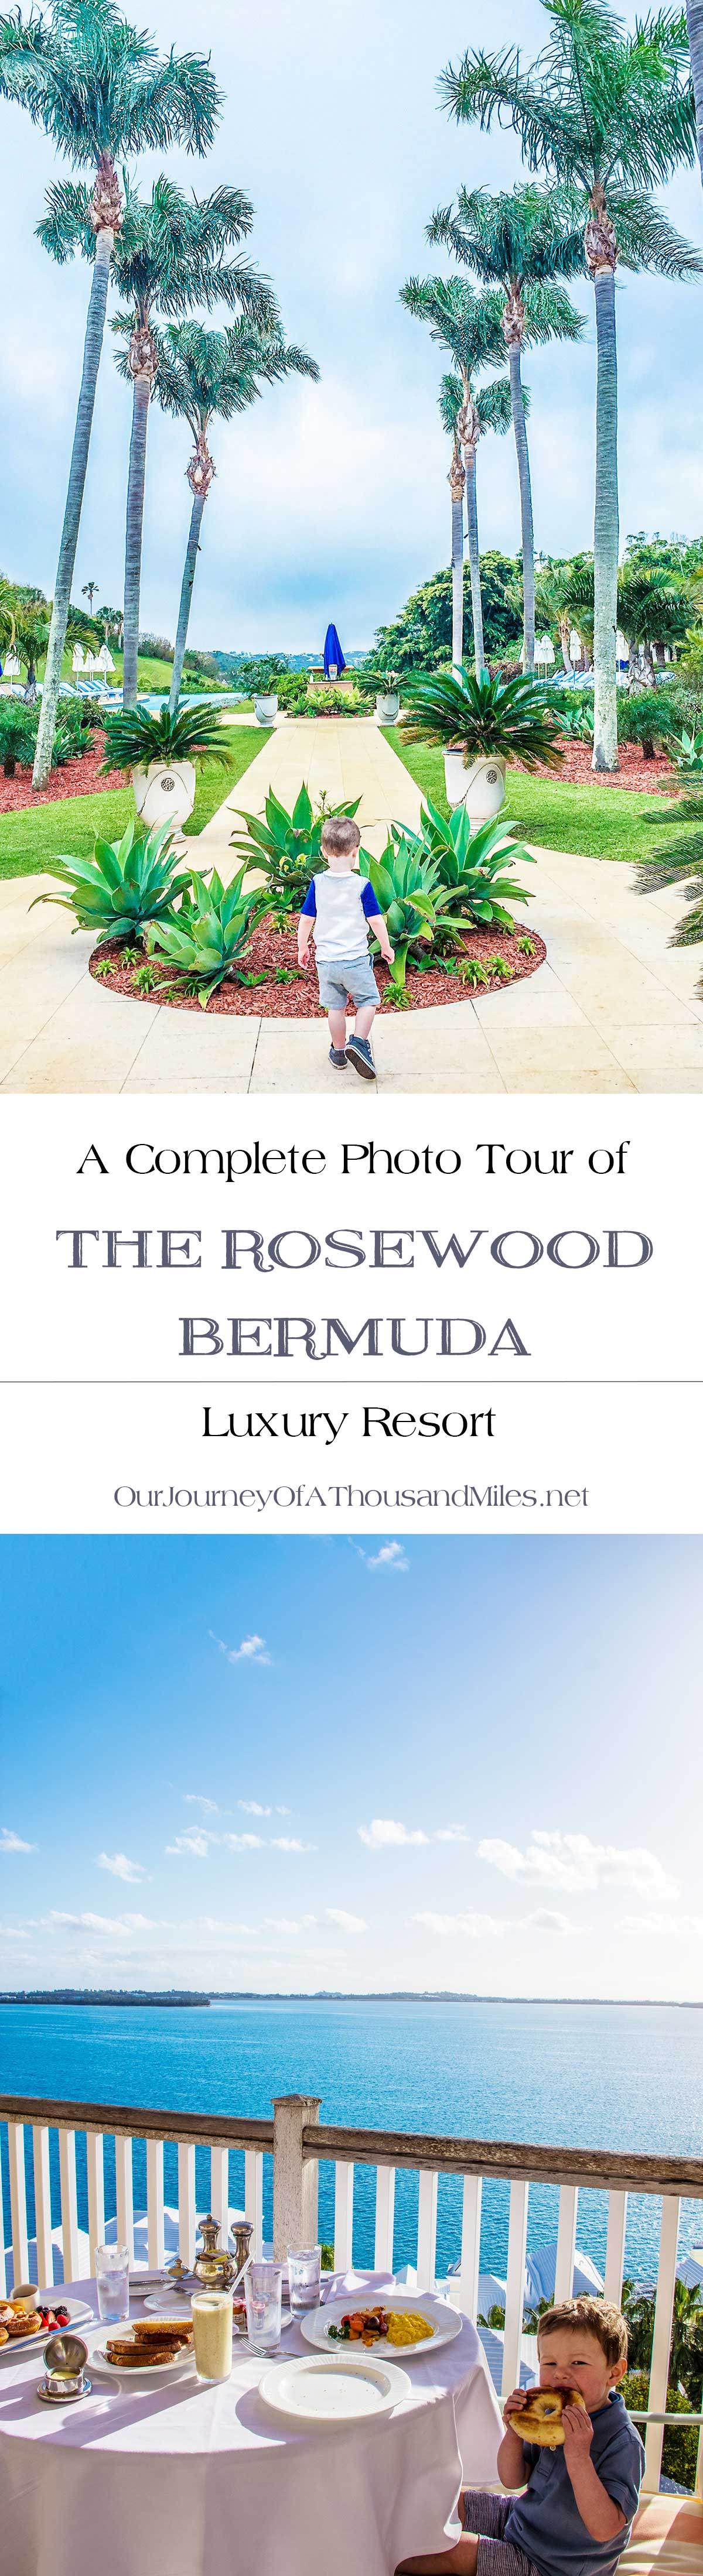 A-Complete-Photo-Tour-of-The-Rosewood-Bermuda-Luxury-Resort